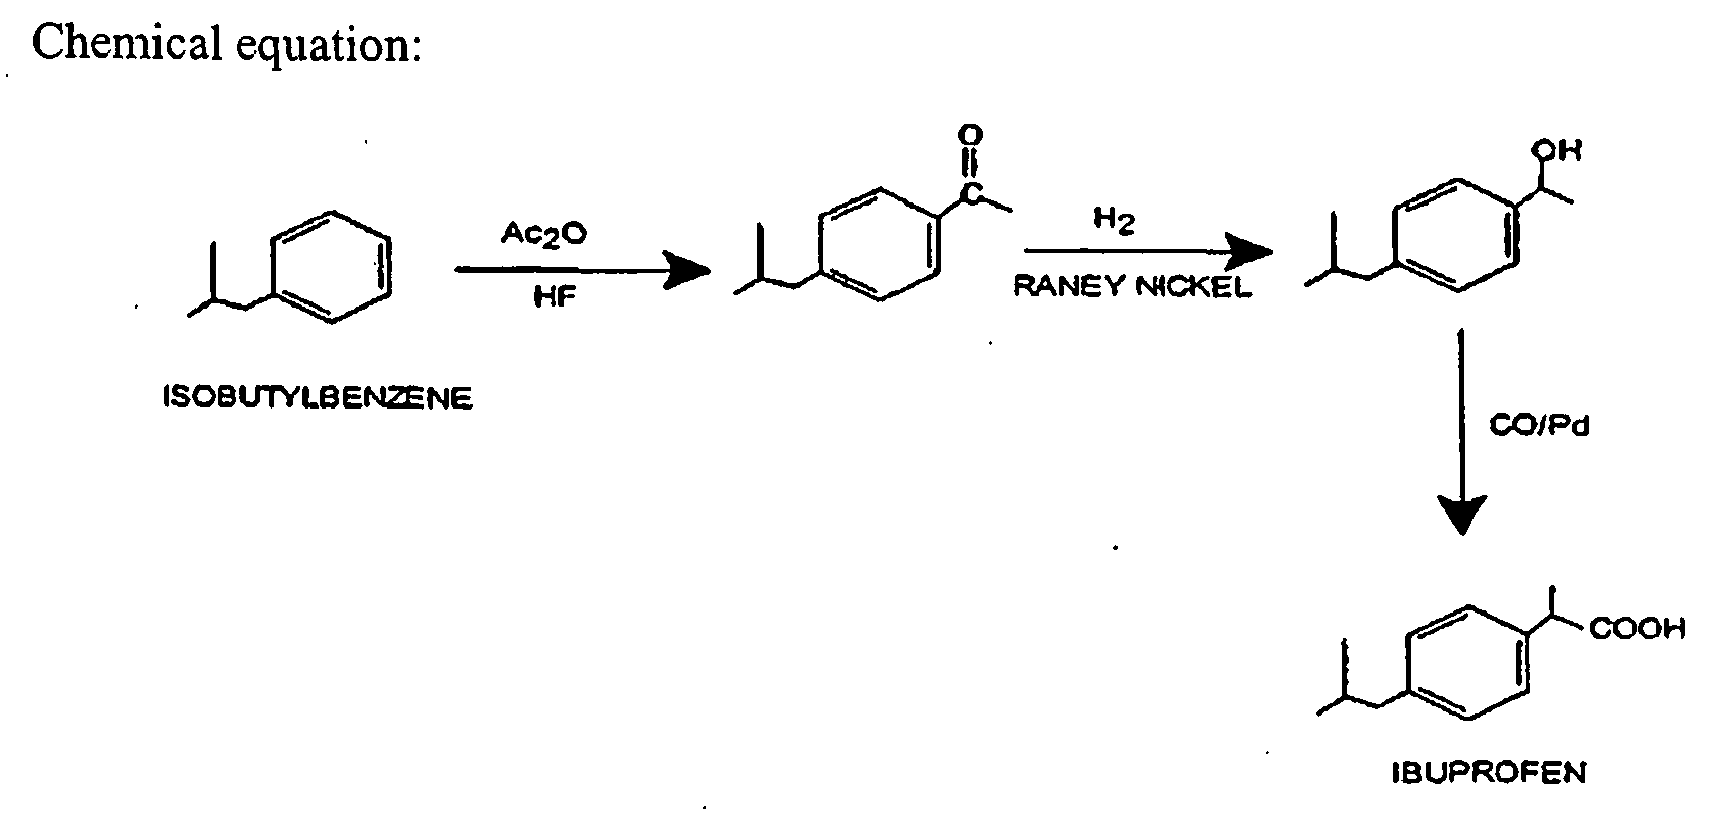 a research on the friedel crafts process of acetylation of ferrocene The friedel–crafts reactions are a set of reactions developed by charles friedel and james crafts in 1877 to attach substituents to an aromatic ring  there are two main types of friedel–crafts reactions: alkylation reactions and acylation reactions.